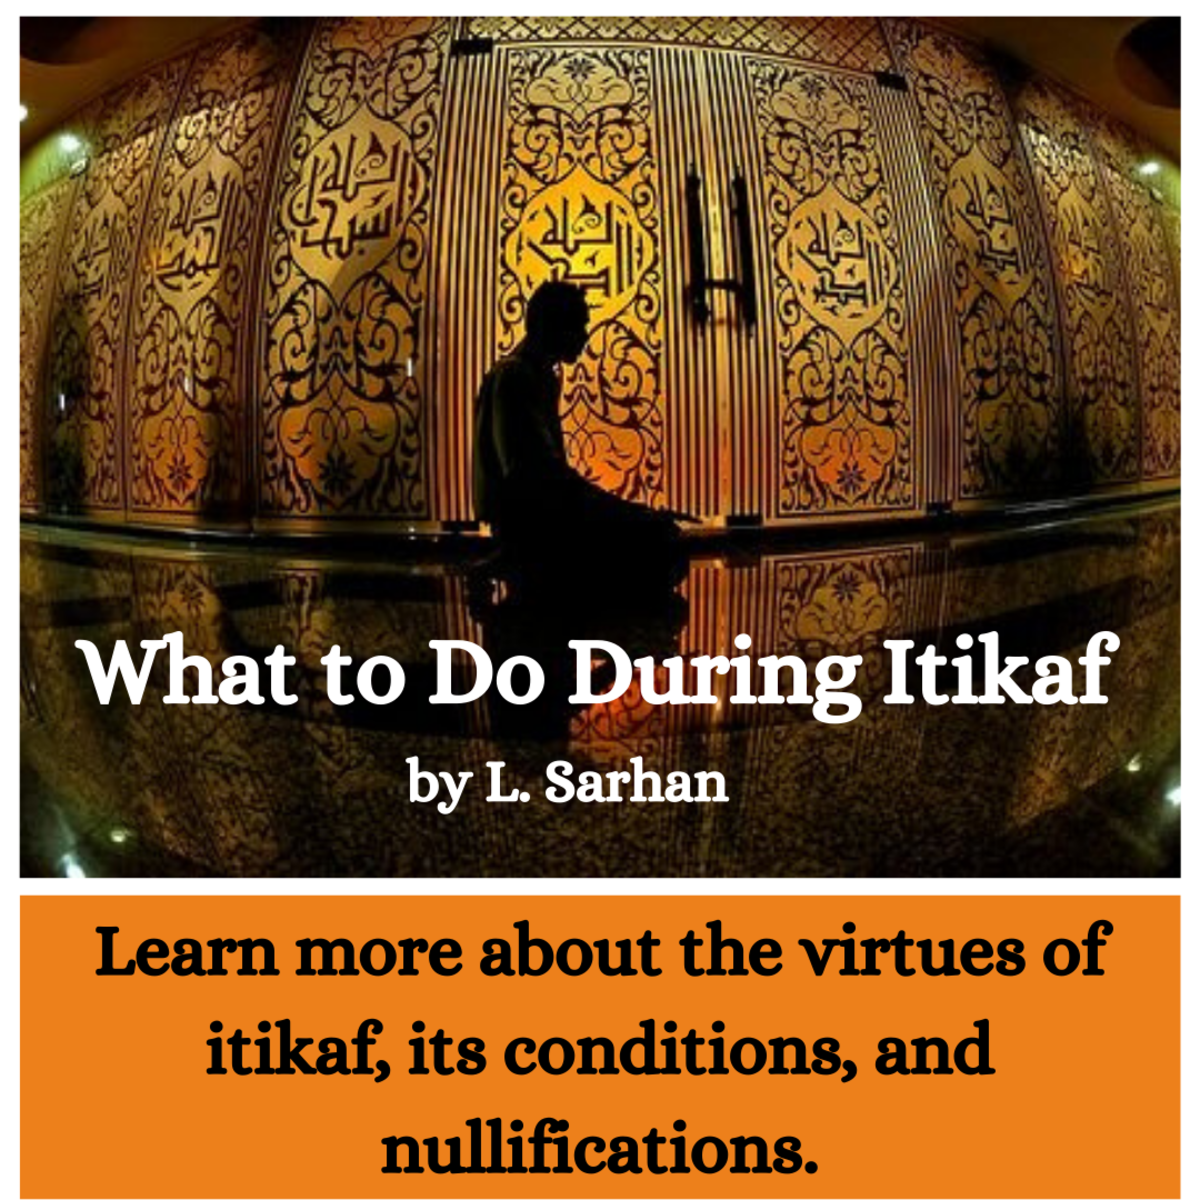 This article will explain in depth the definition, virtues, duration, and conditions of itikaf—as well as provide some information on what you should do during this time and which acts can nullify it.